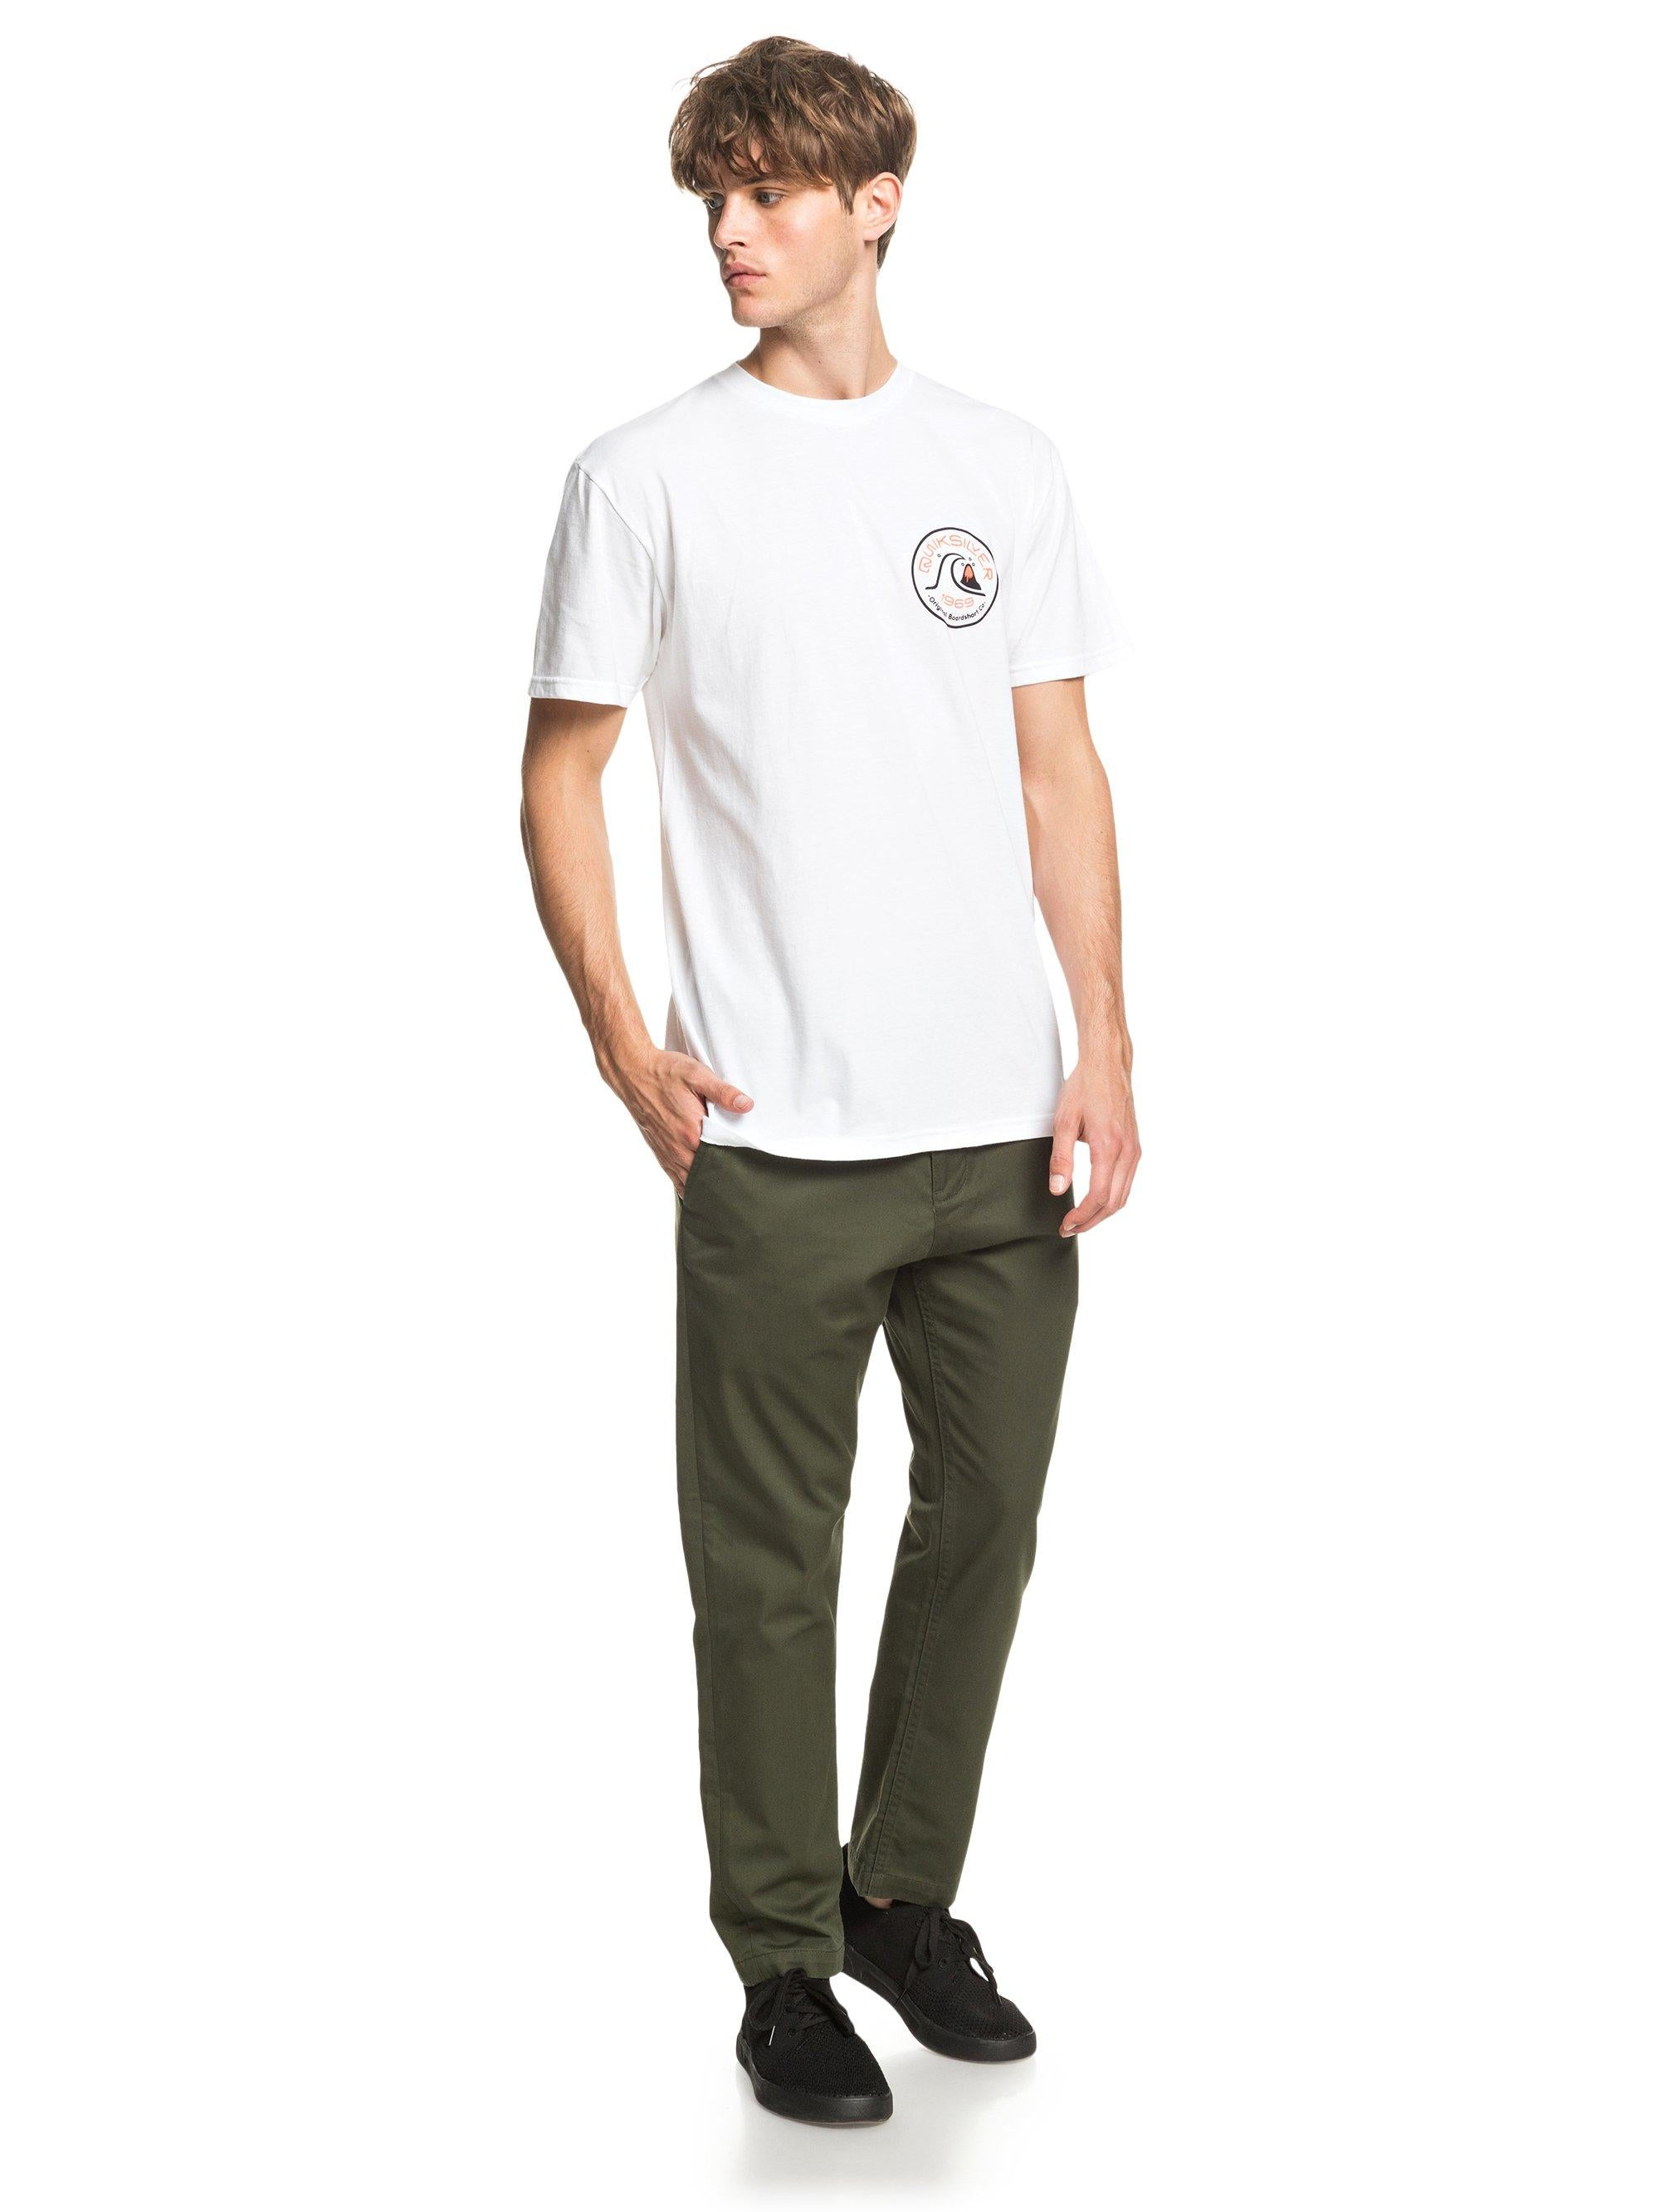 Quiksilver Close Call MTO T-Shirt - 88 Gear